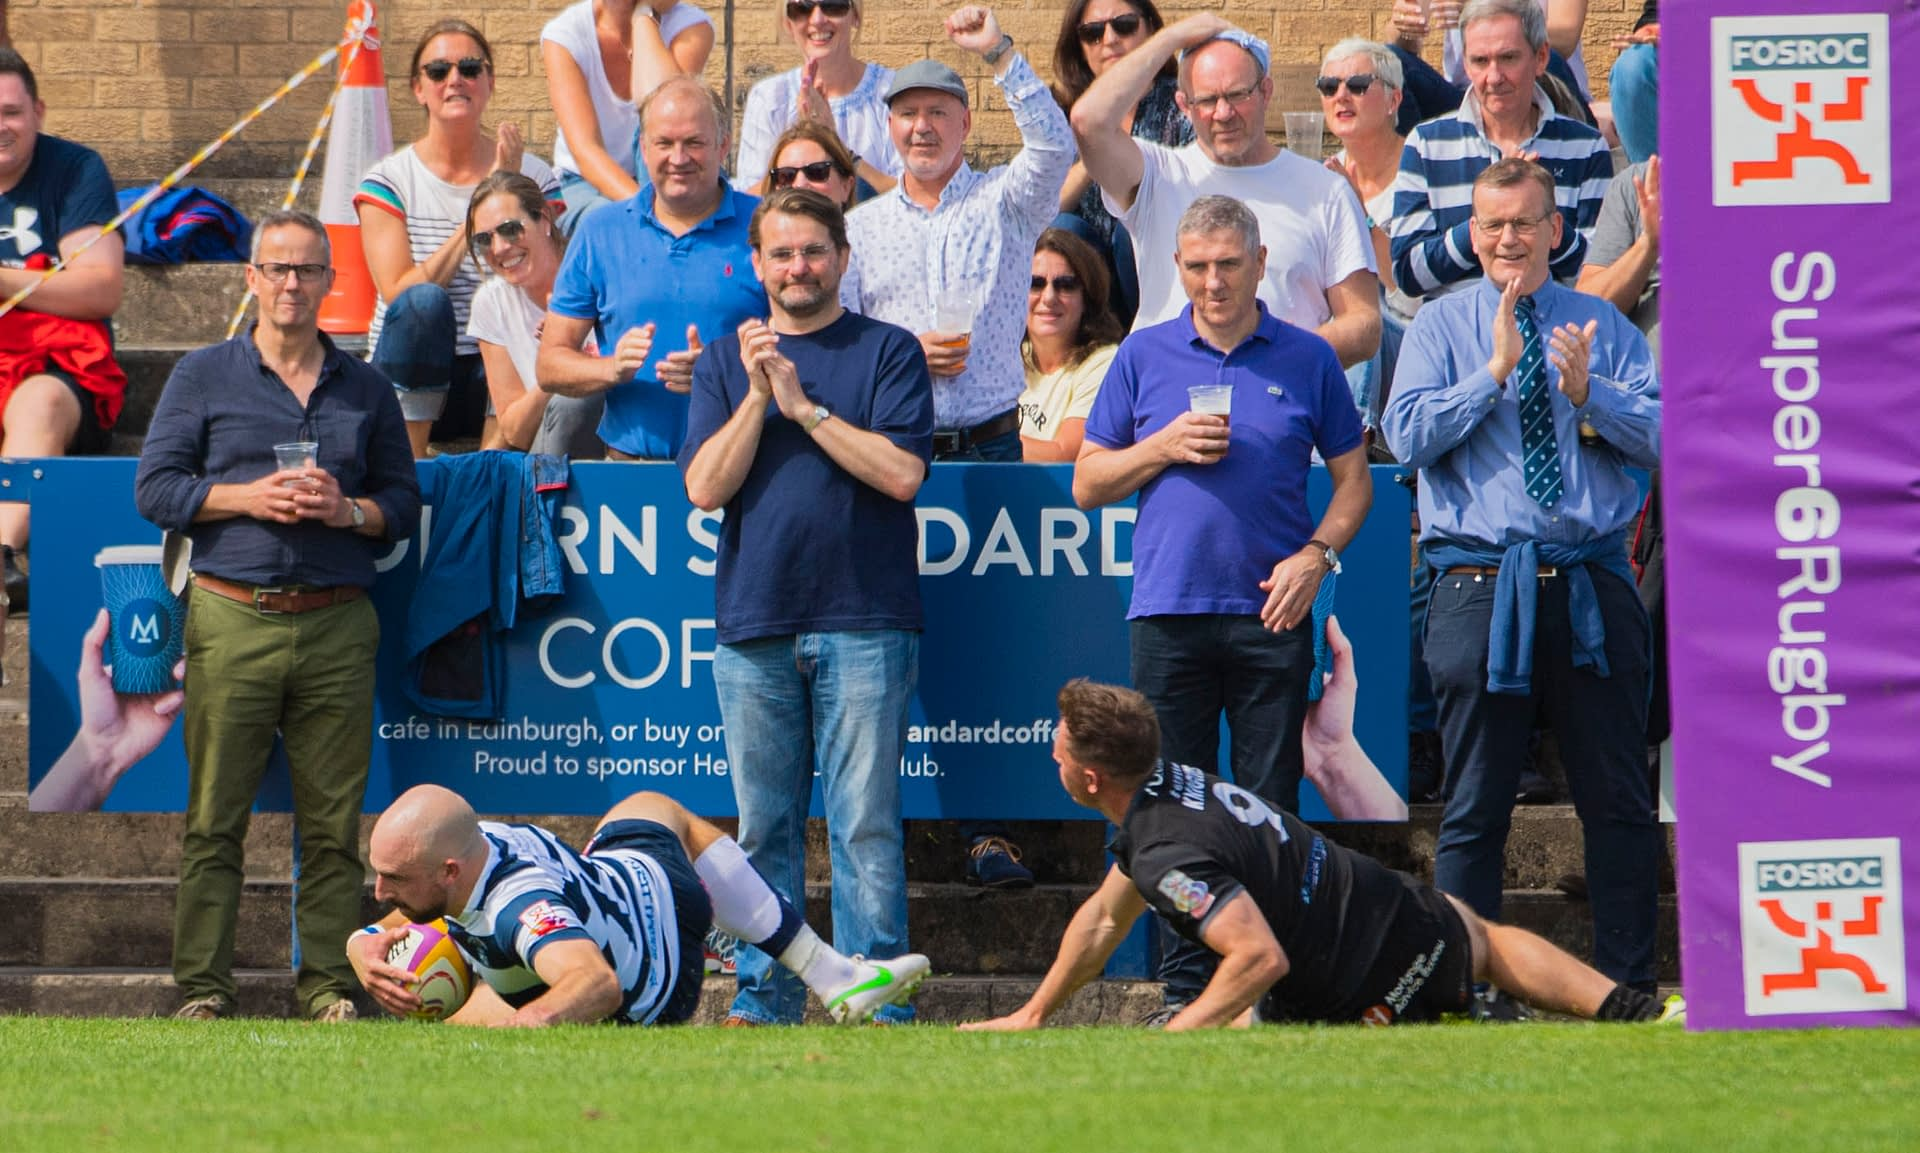 EDINBURGH, SCOTLAND - AUGUST 08: Heriot's Stuart Edwards with a try in front of the fans during a FOSROC Super6 match between Heriot's and Southern Knights at Heriot's Rugby Club, on August 08, 2021, in Edinburgh, Scotland. (Photo by Paul Devlin / SNS Group)